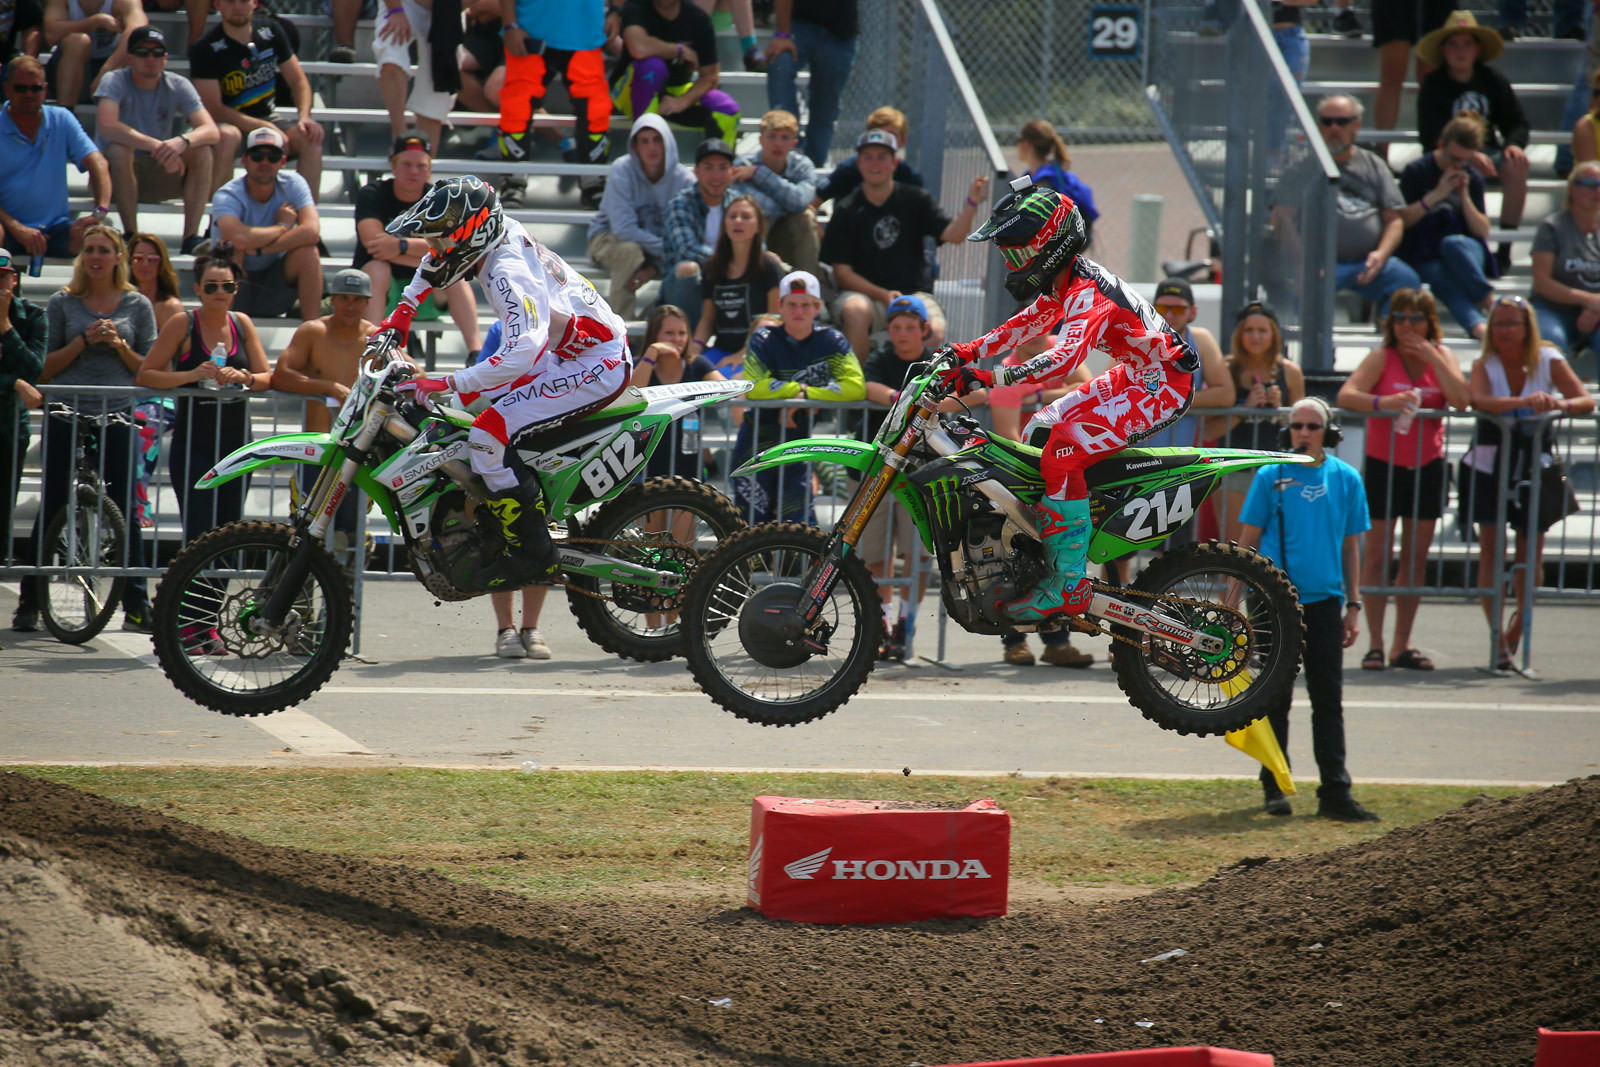 Cameron Mcadoo and Austin Forkner - 2016 Ricky Carmichael Amateur Supercross - Motocross Pictures - Vital MX